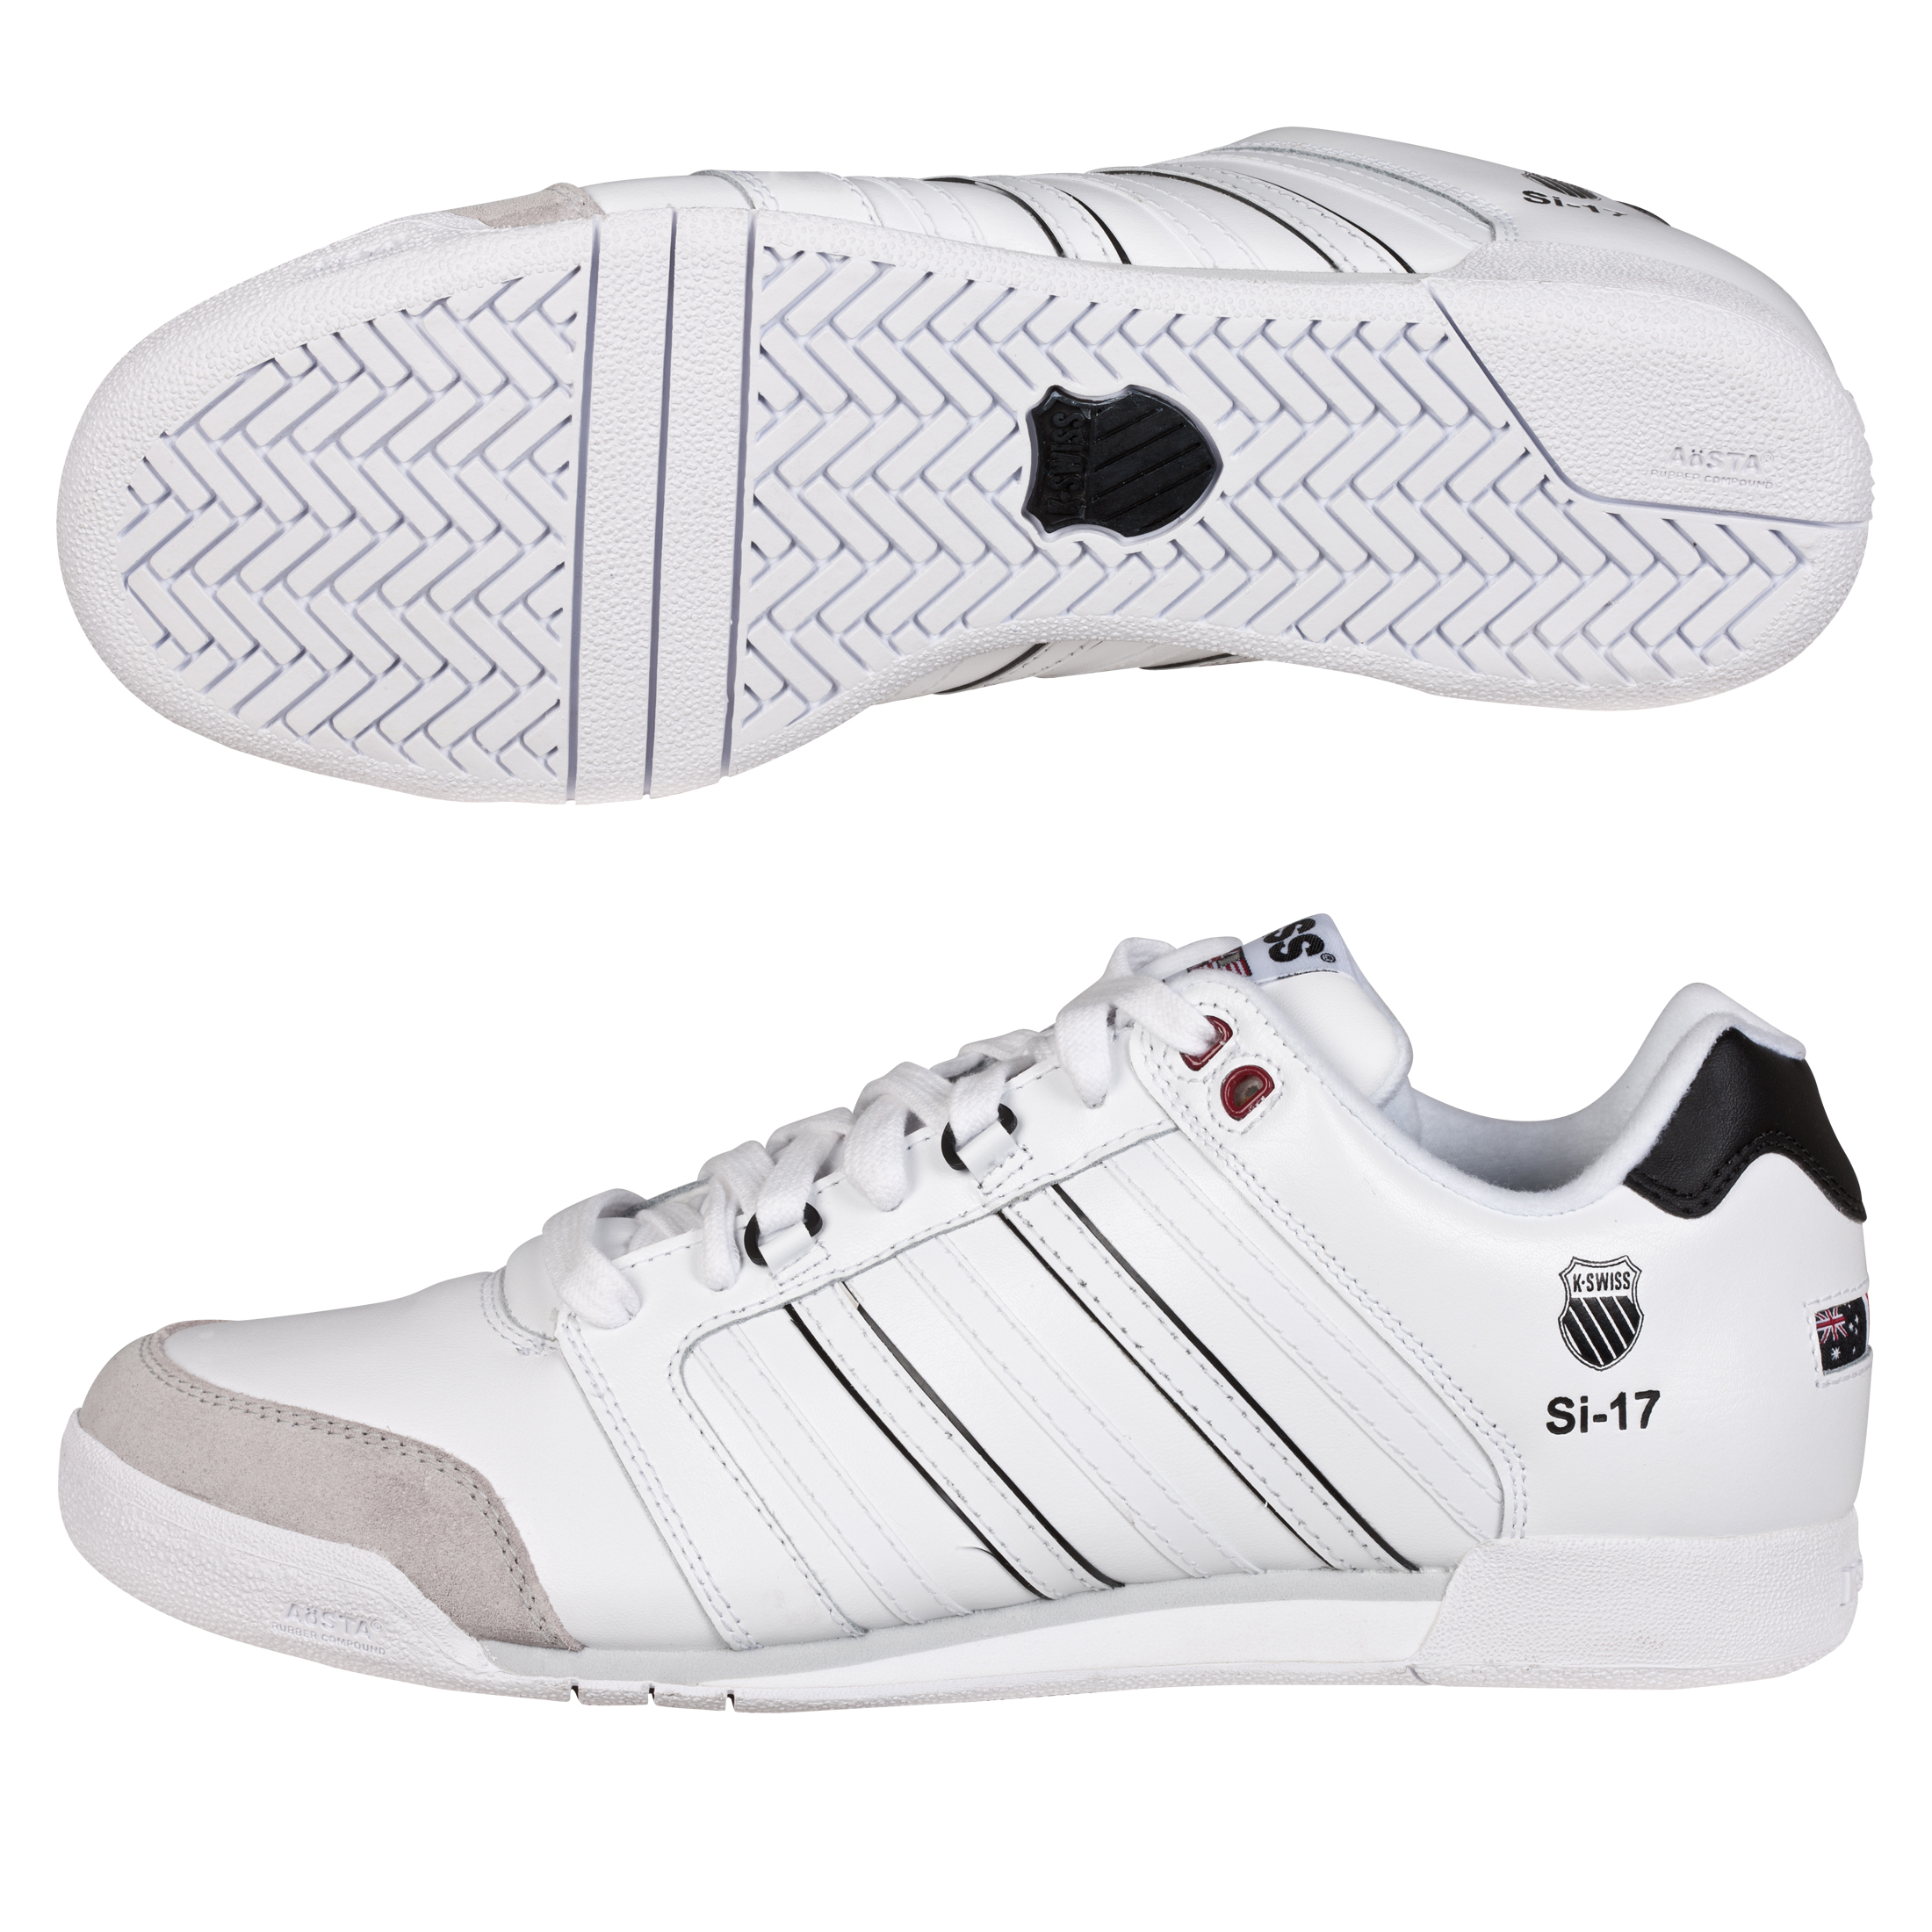 K Swiss K-Swiss SI-17 Trainers - White/Black/Red